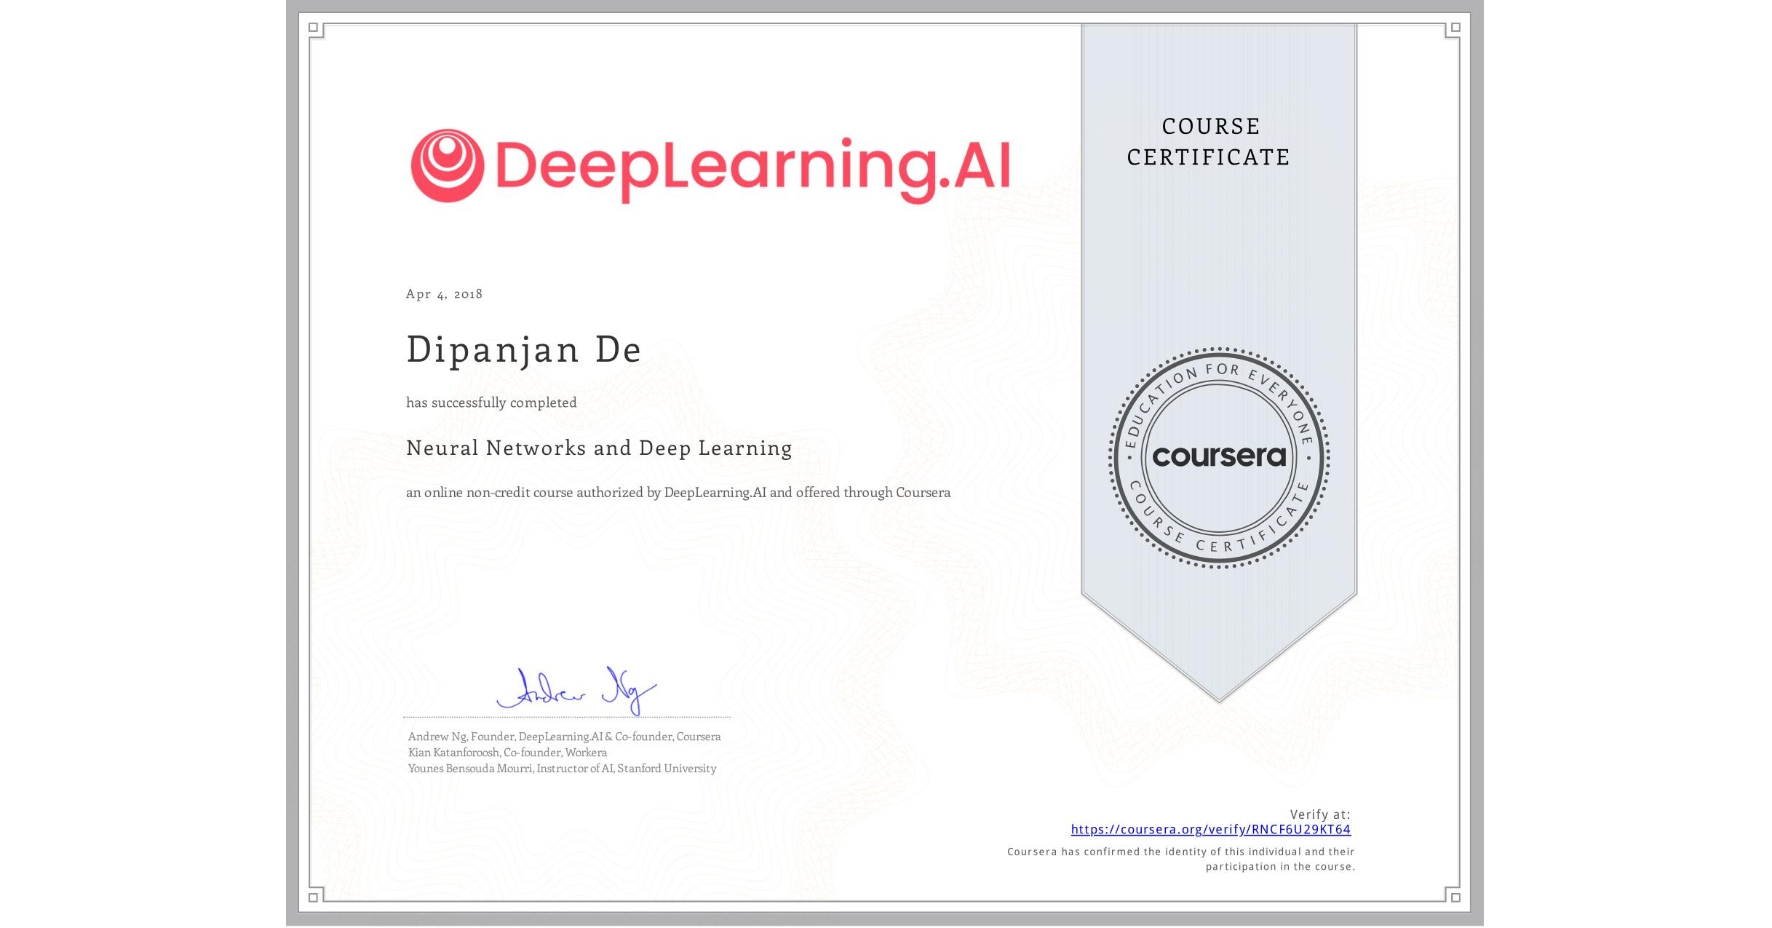 View certificate for Dipanjan De, Neural Networks and Deep Learning, an online non-credit course authorized by DeepLearning.AI and offered through Coursera